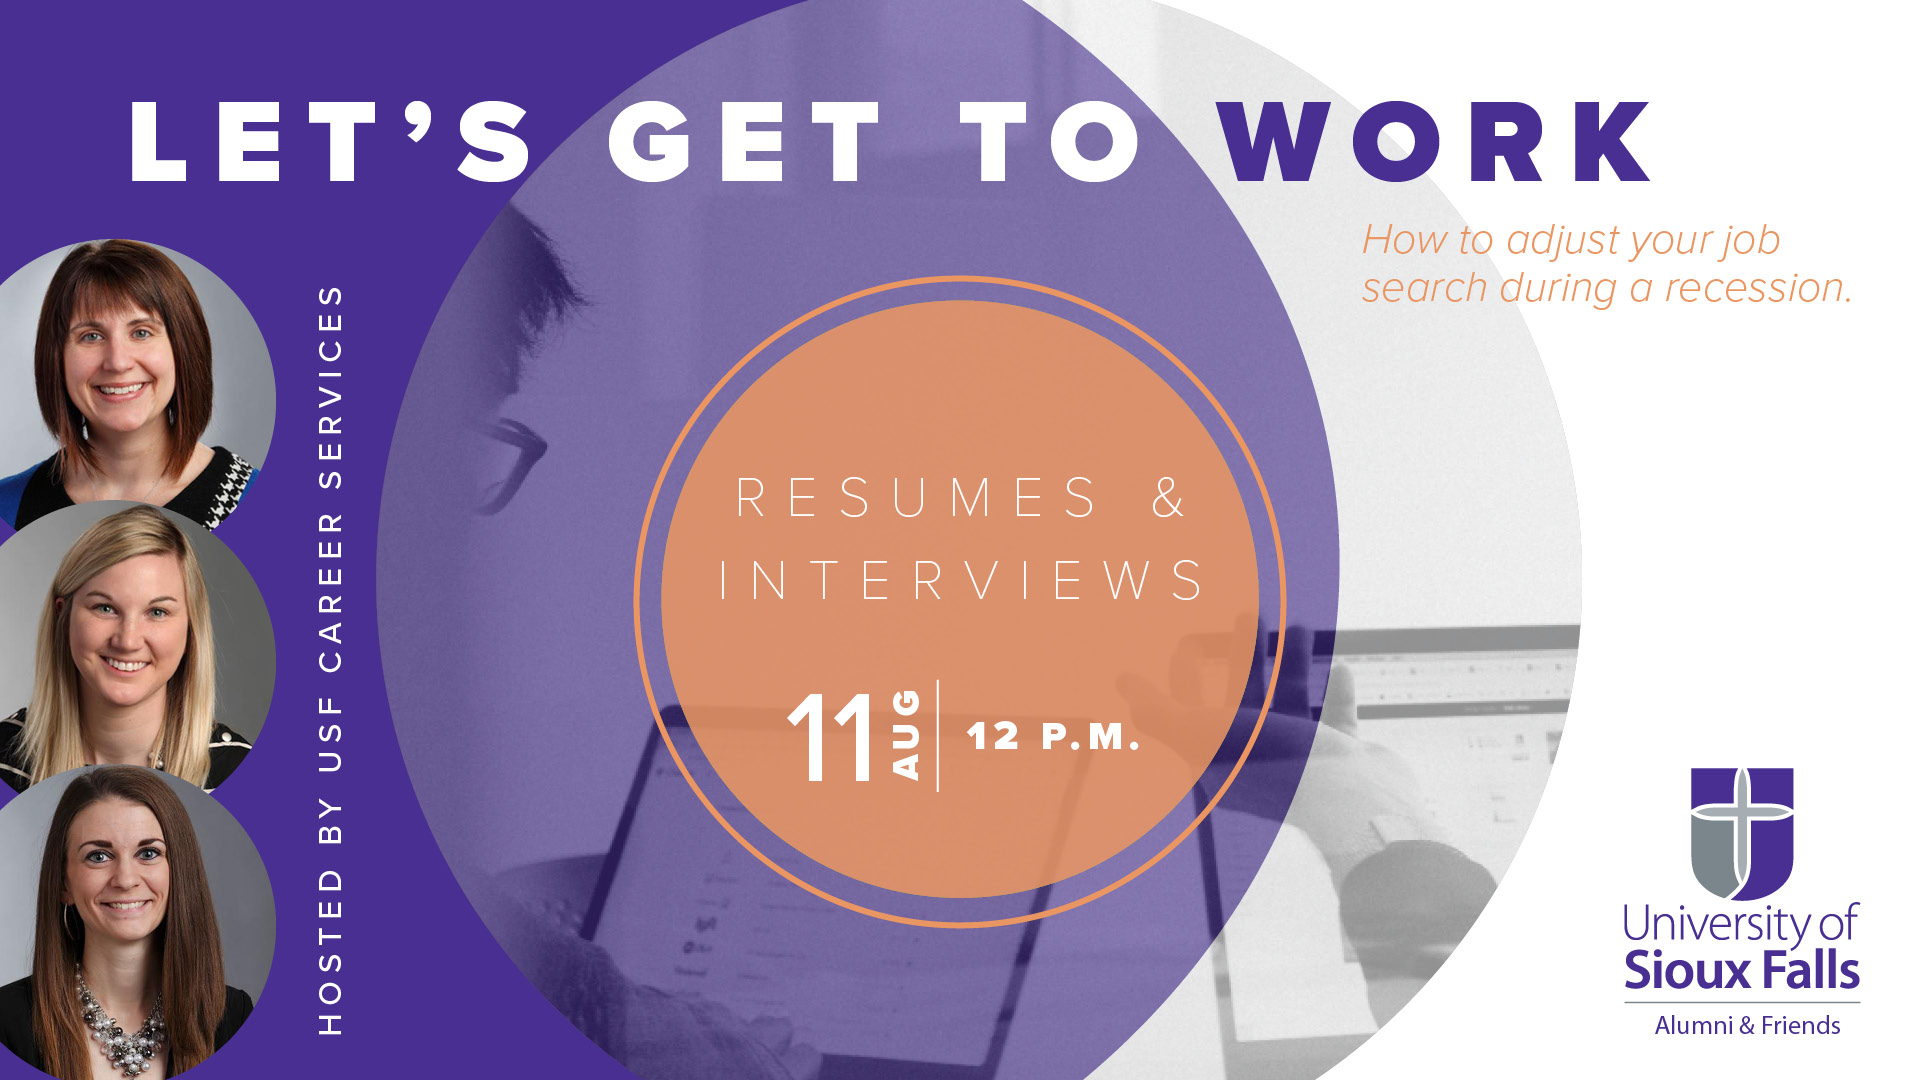 Let's Get to Work How to adjust your job search during a recession. Hosted by USF Career Services August 11 at 12 p.m.